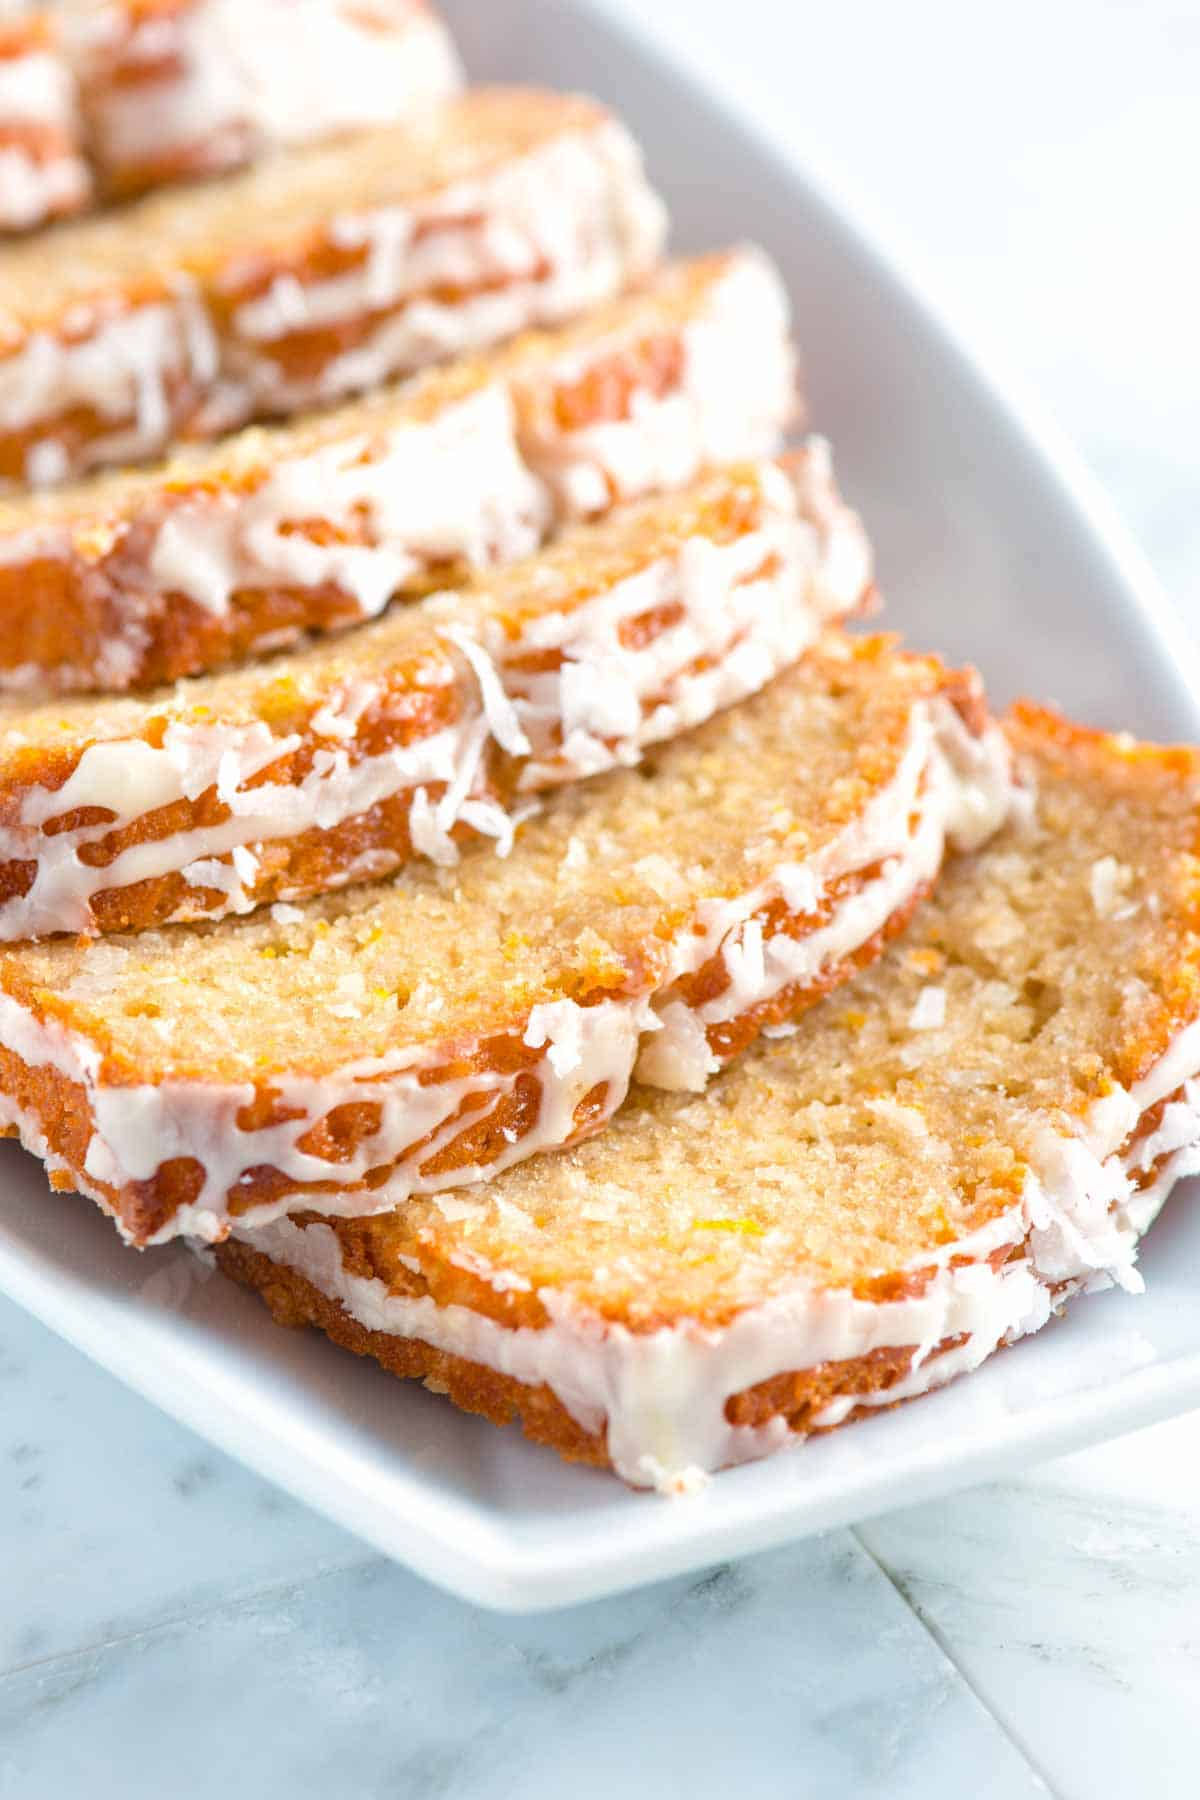 How to Make Coconut Bread